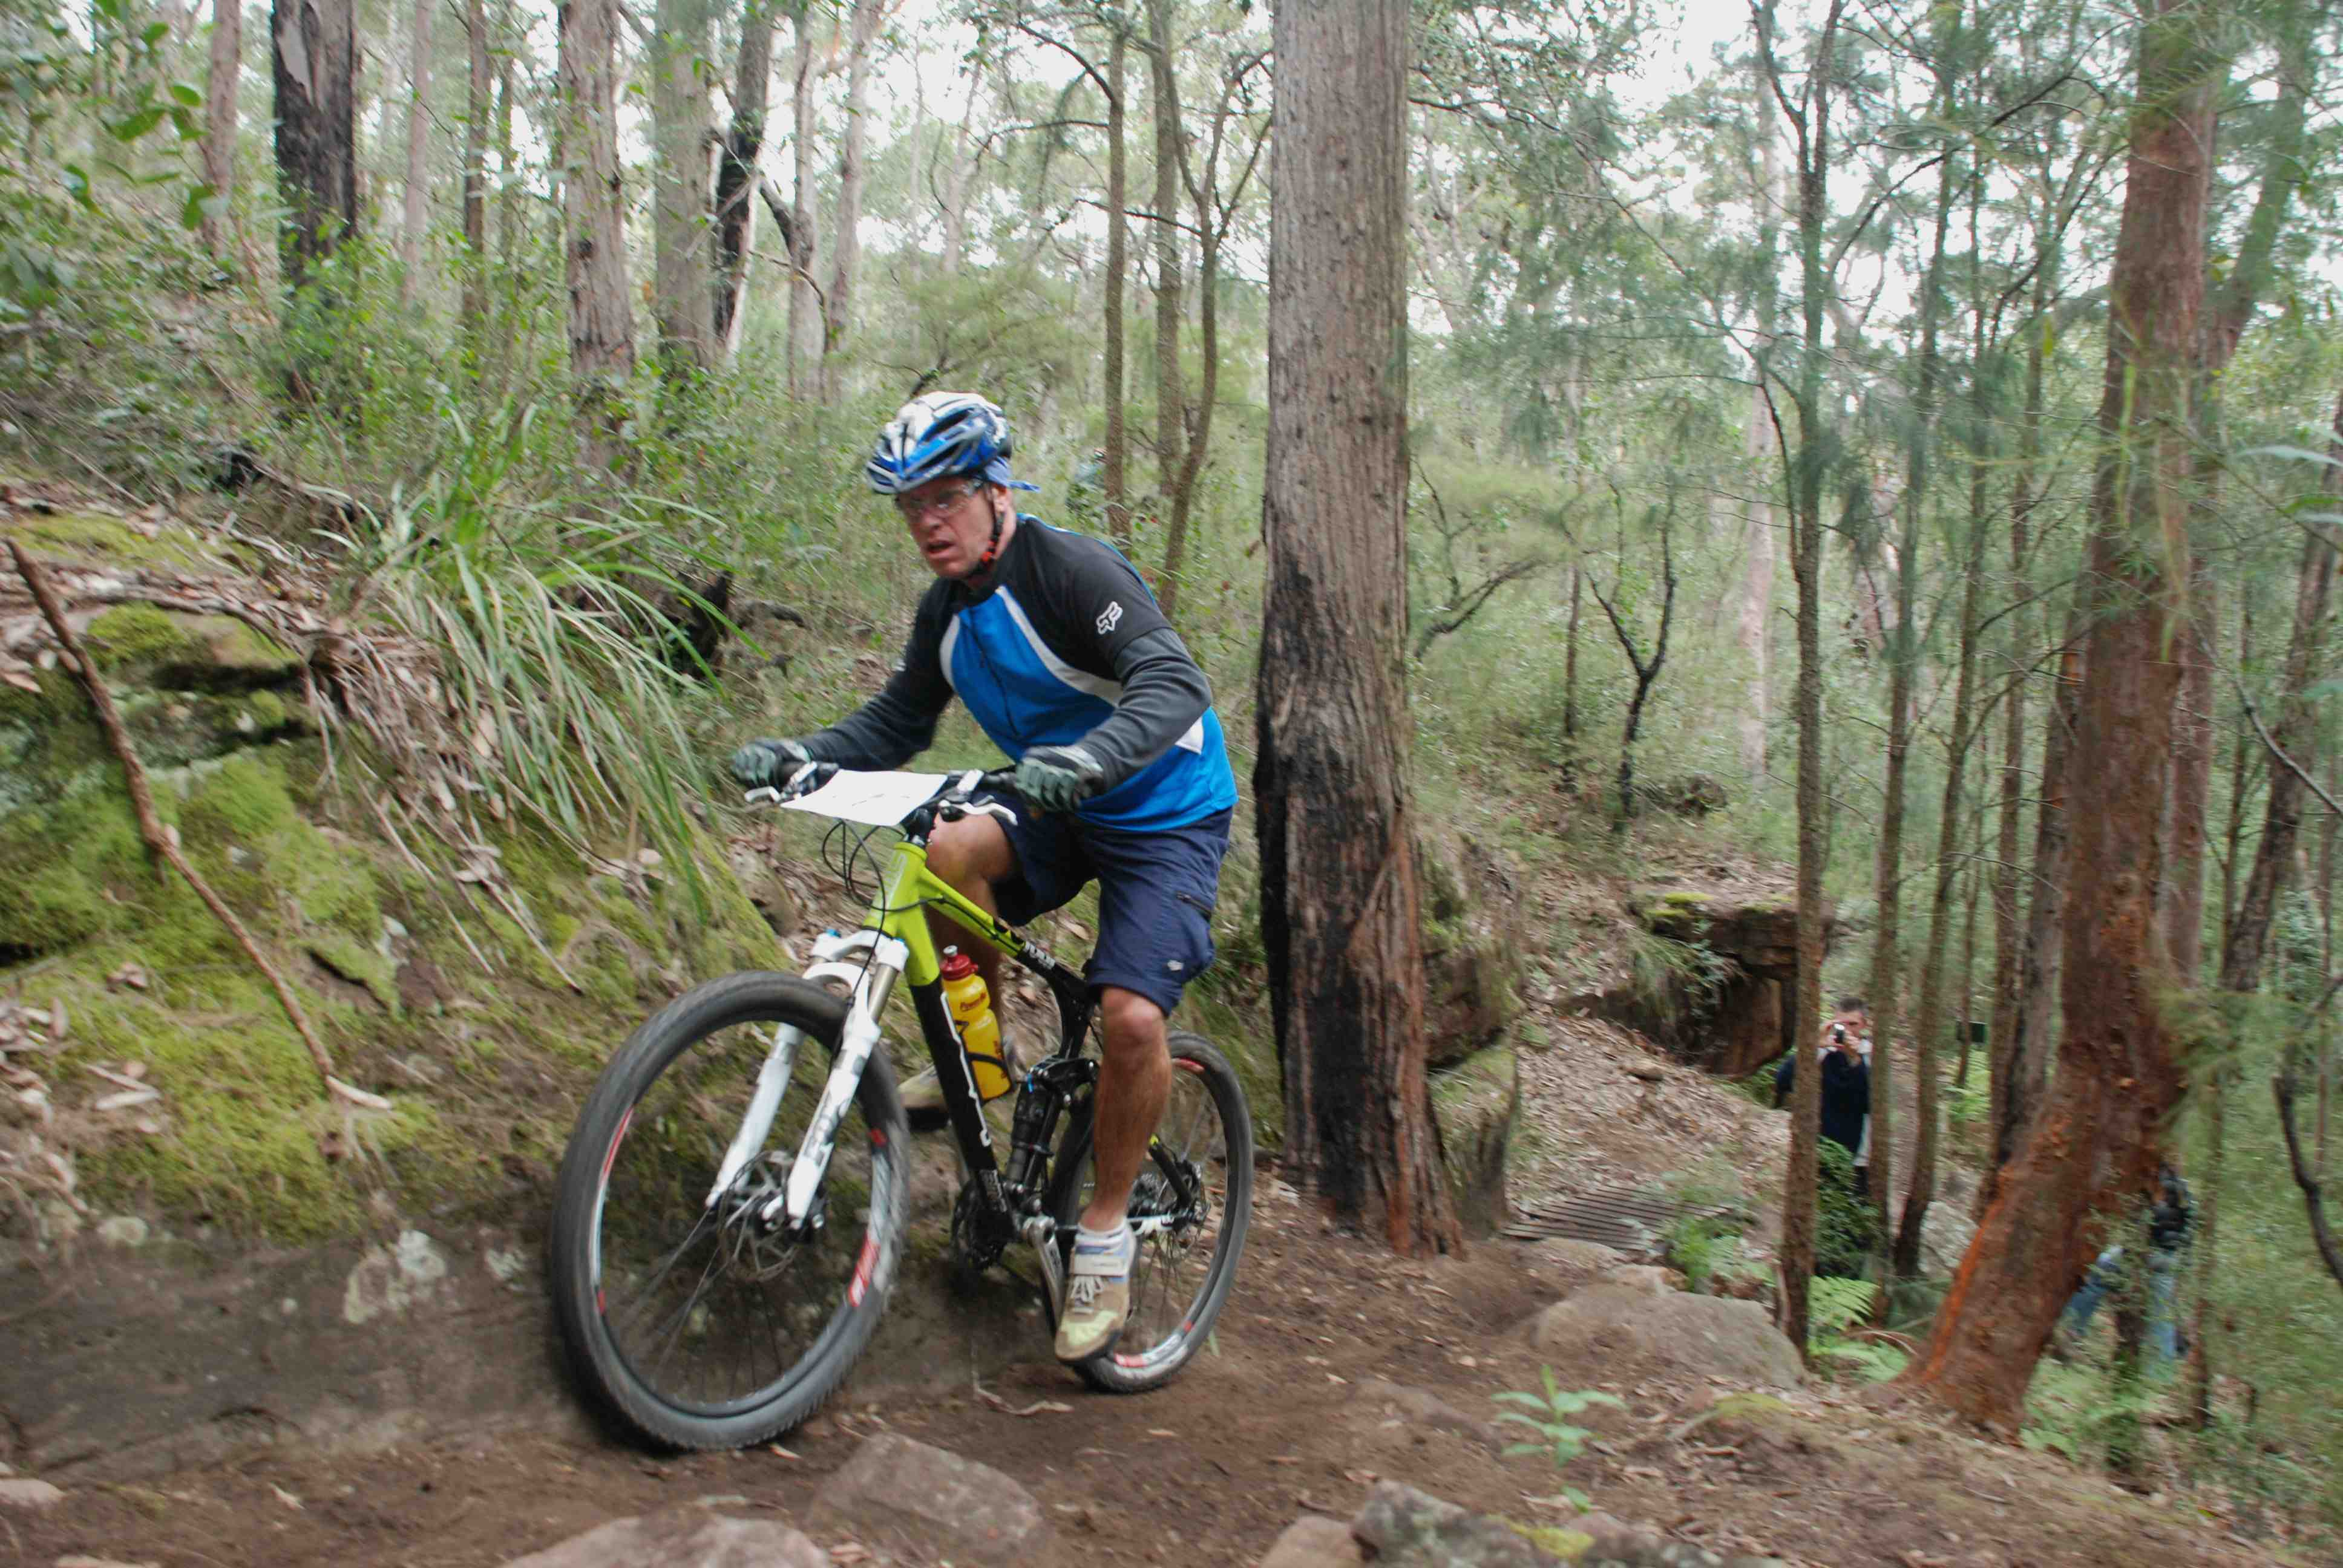 Steve Robinson powered up the long course climb on one of the BMC demo bikes available this weekend.